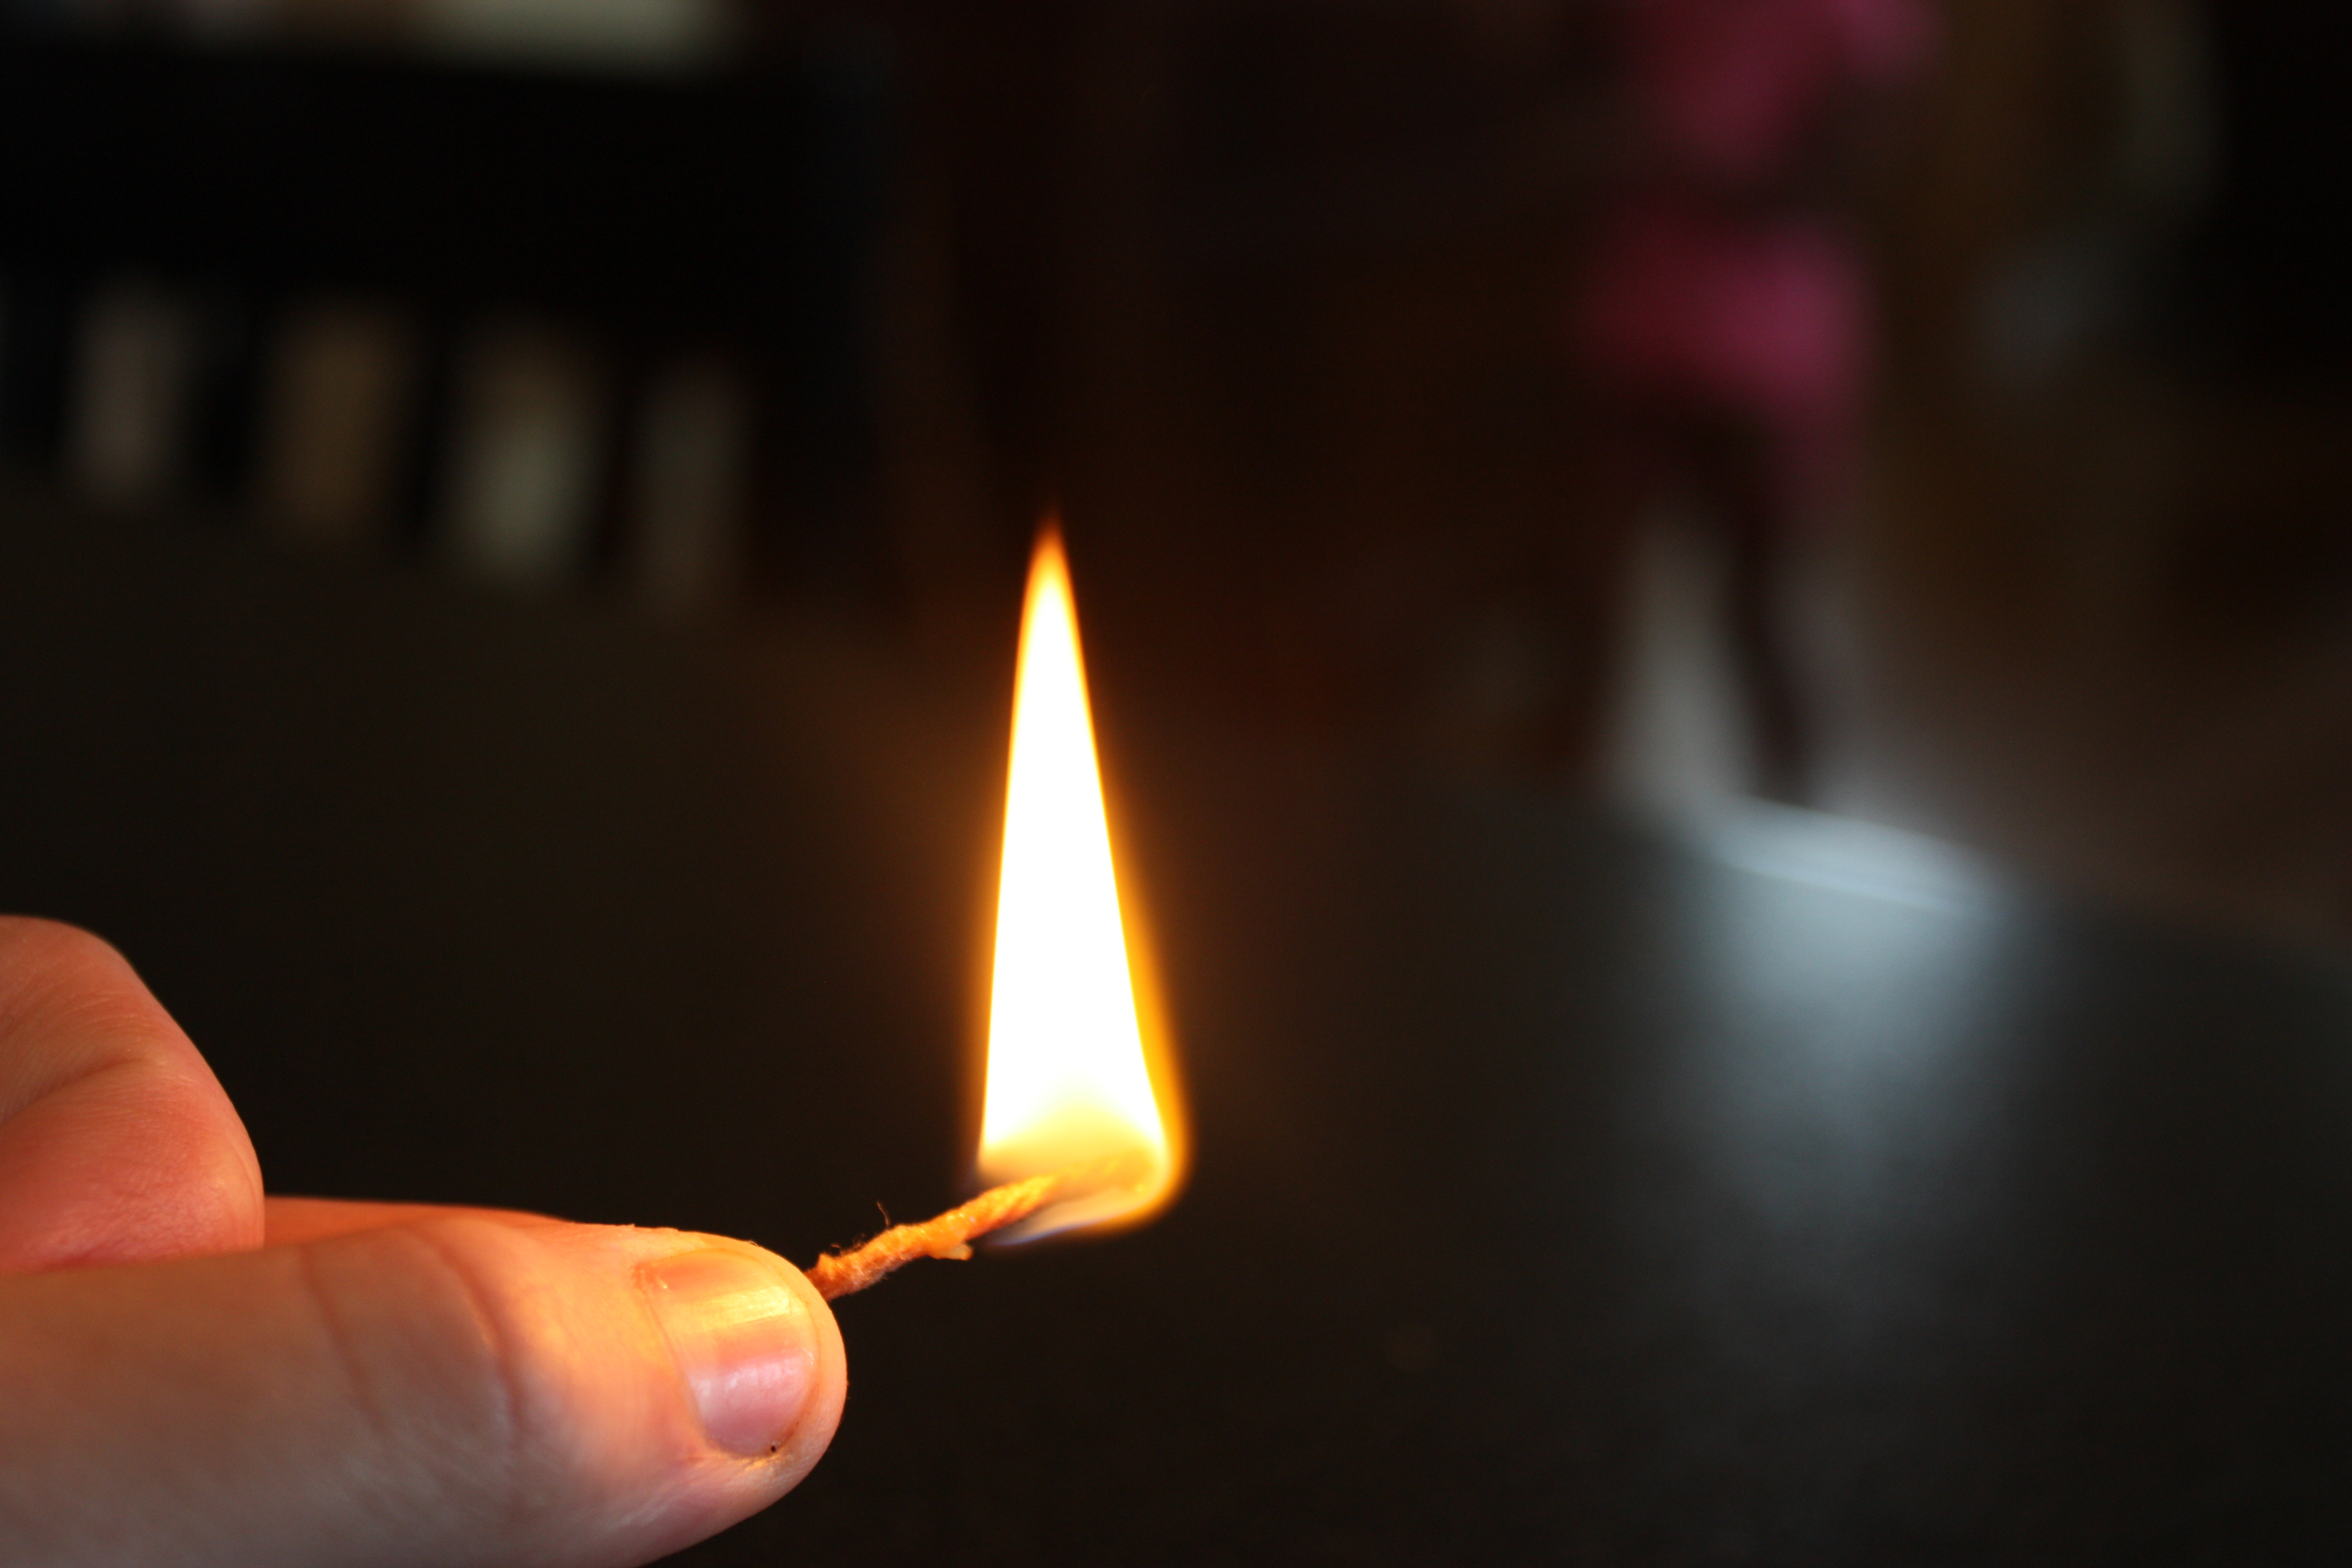 How to Make a Candle Wick